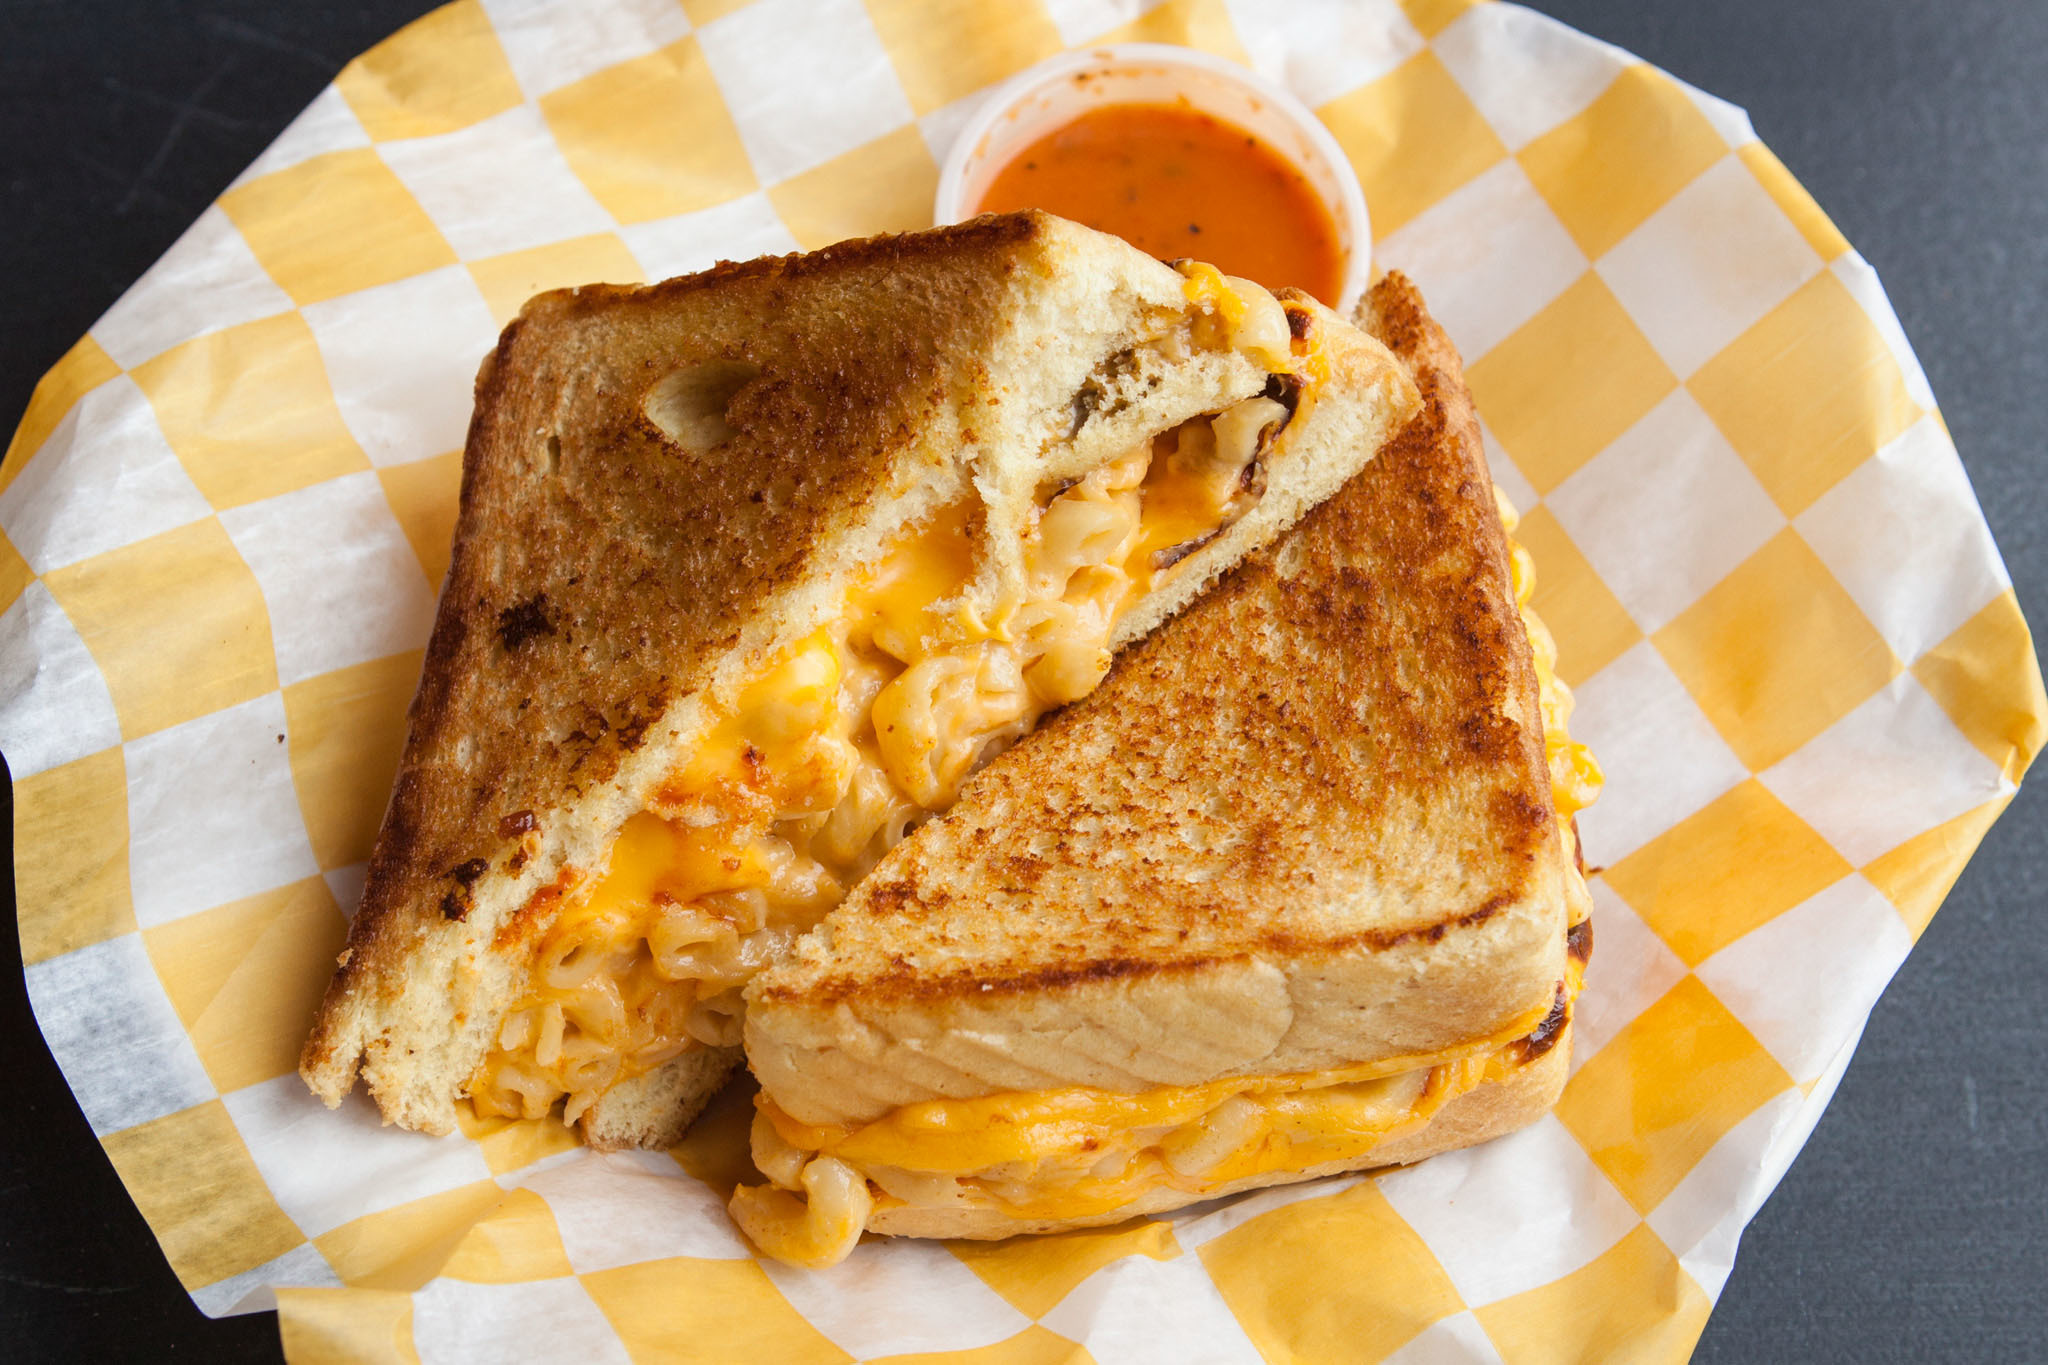 cheesies chicago grilled cheese